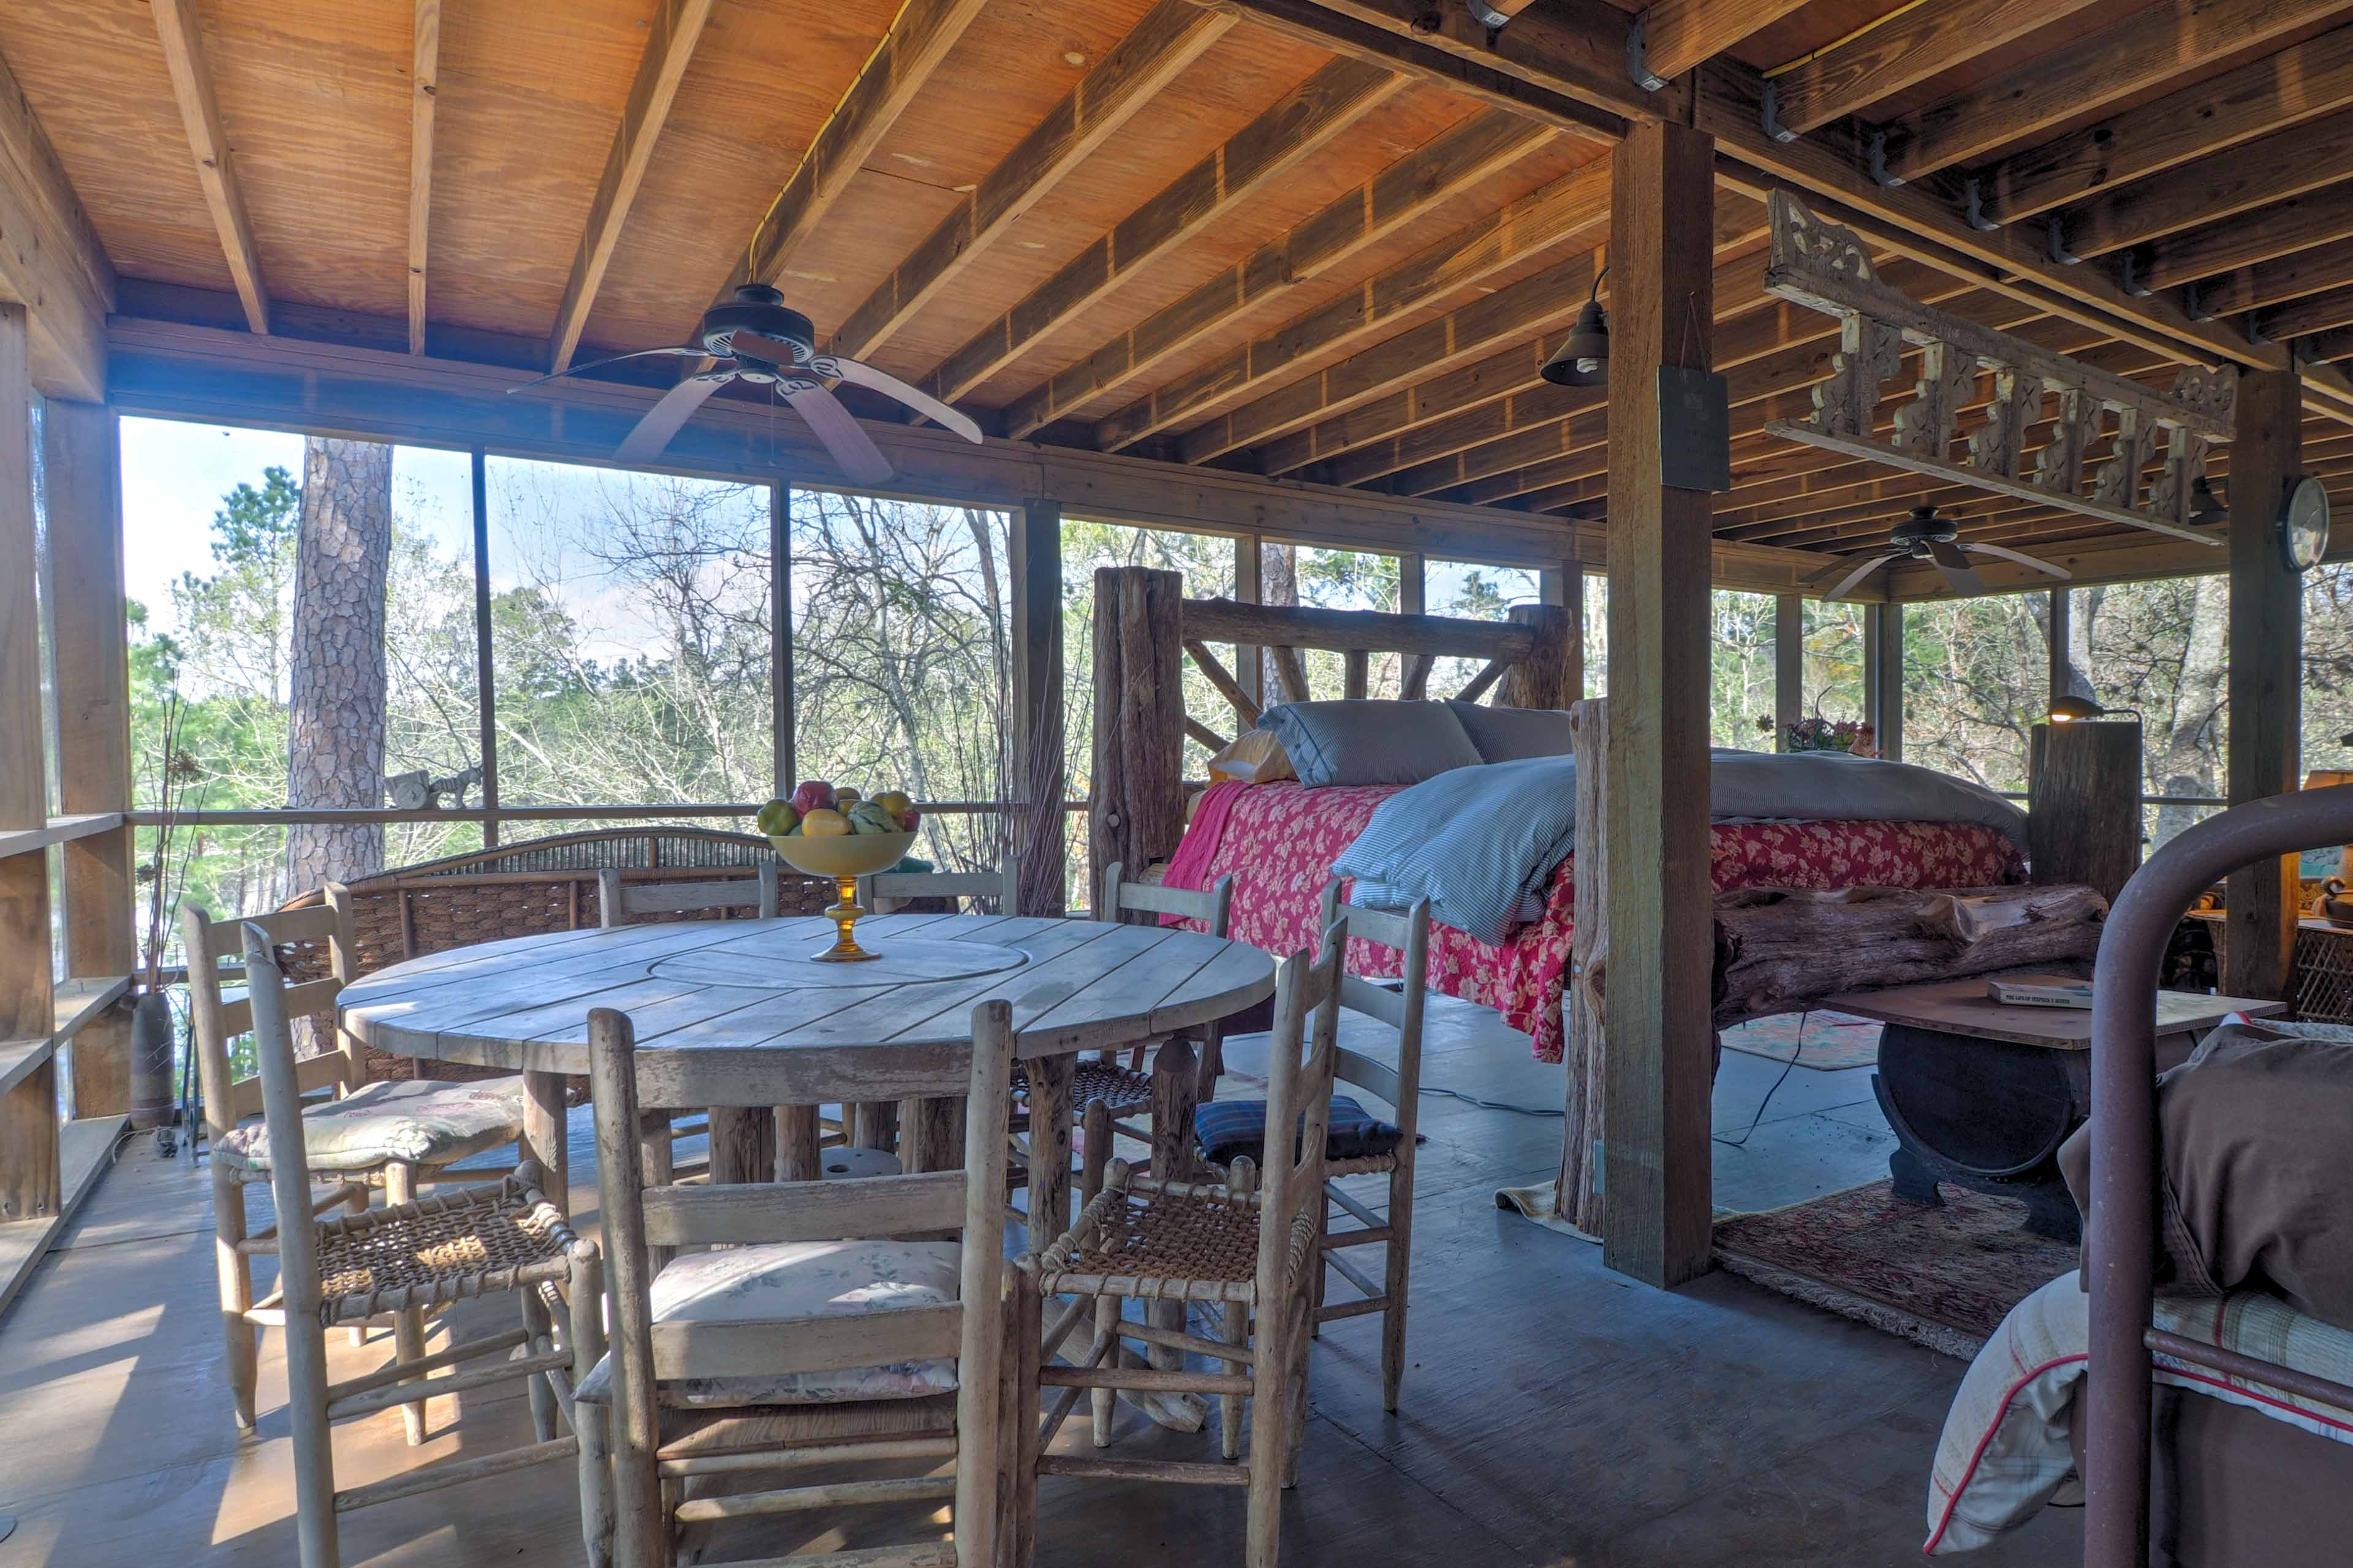 Opt for the outdoors and sleep on the screened in porch!